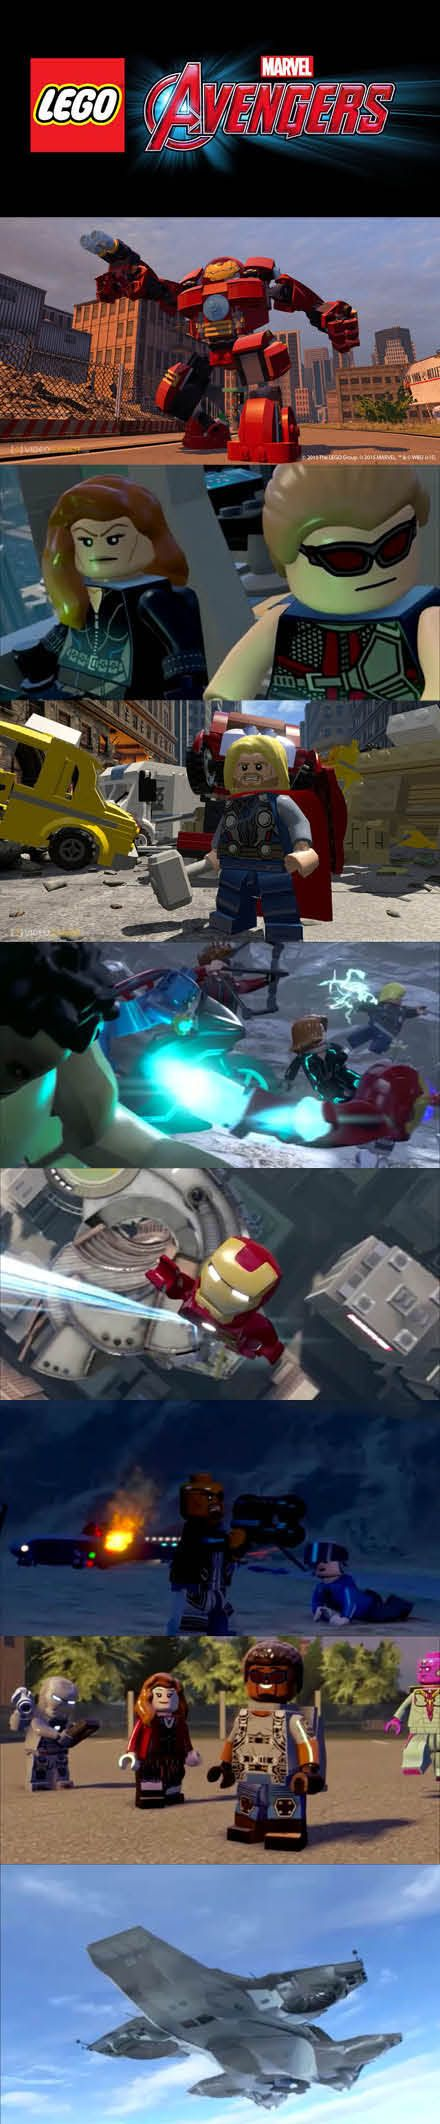 You get to play through the Marvel movies in #LEGO #Marvel #Avengers! #IronMan #Captain America #Hulk #Thor #BlackWidow #Hawkeye http://www.levelgamingground.com/lego-marvel-avengers-review.html